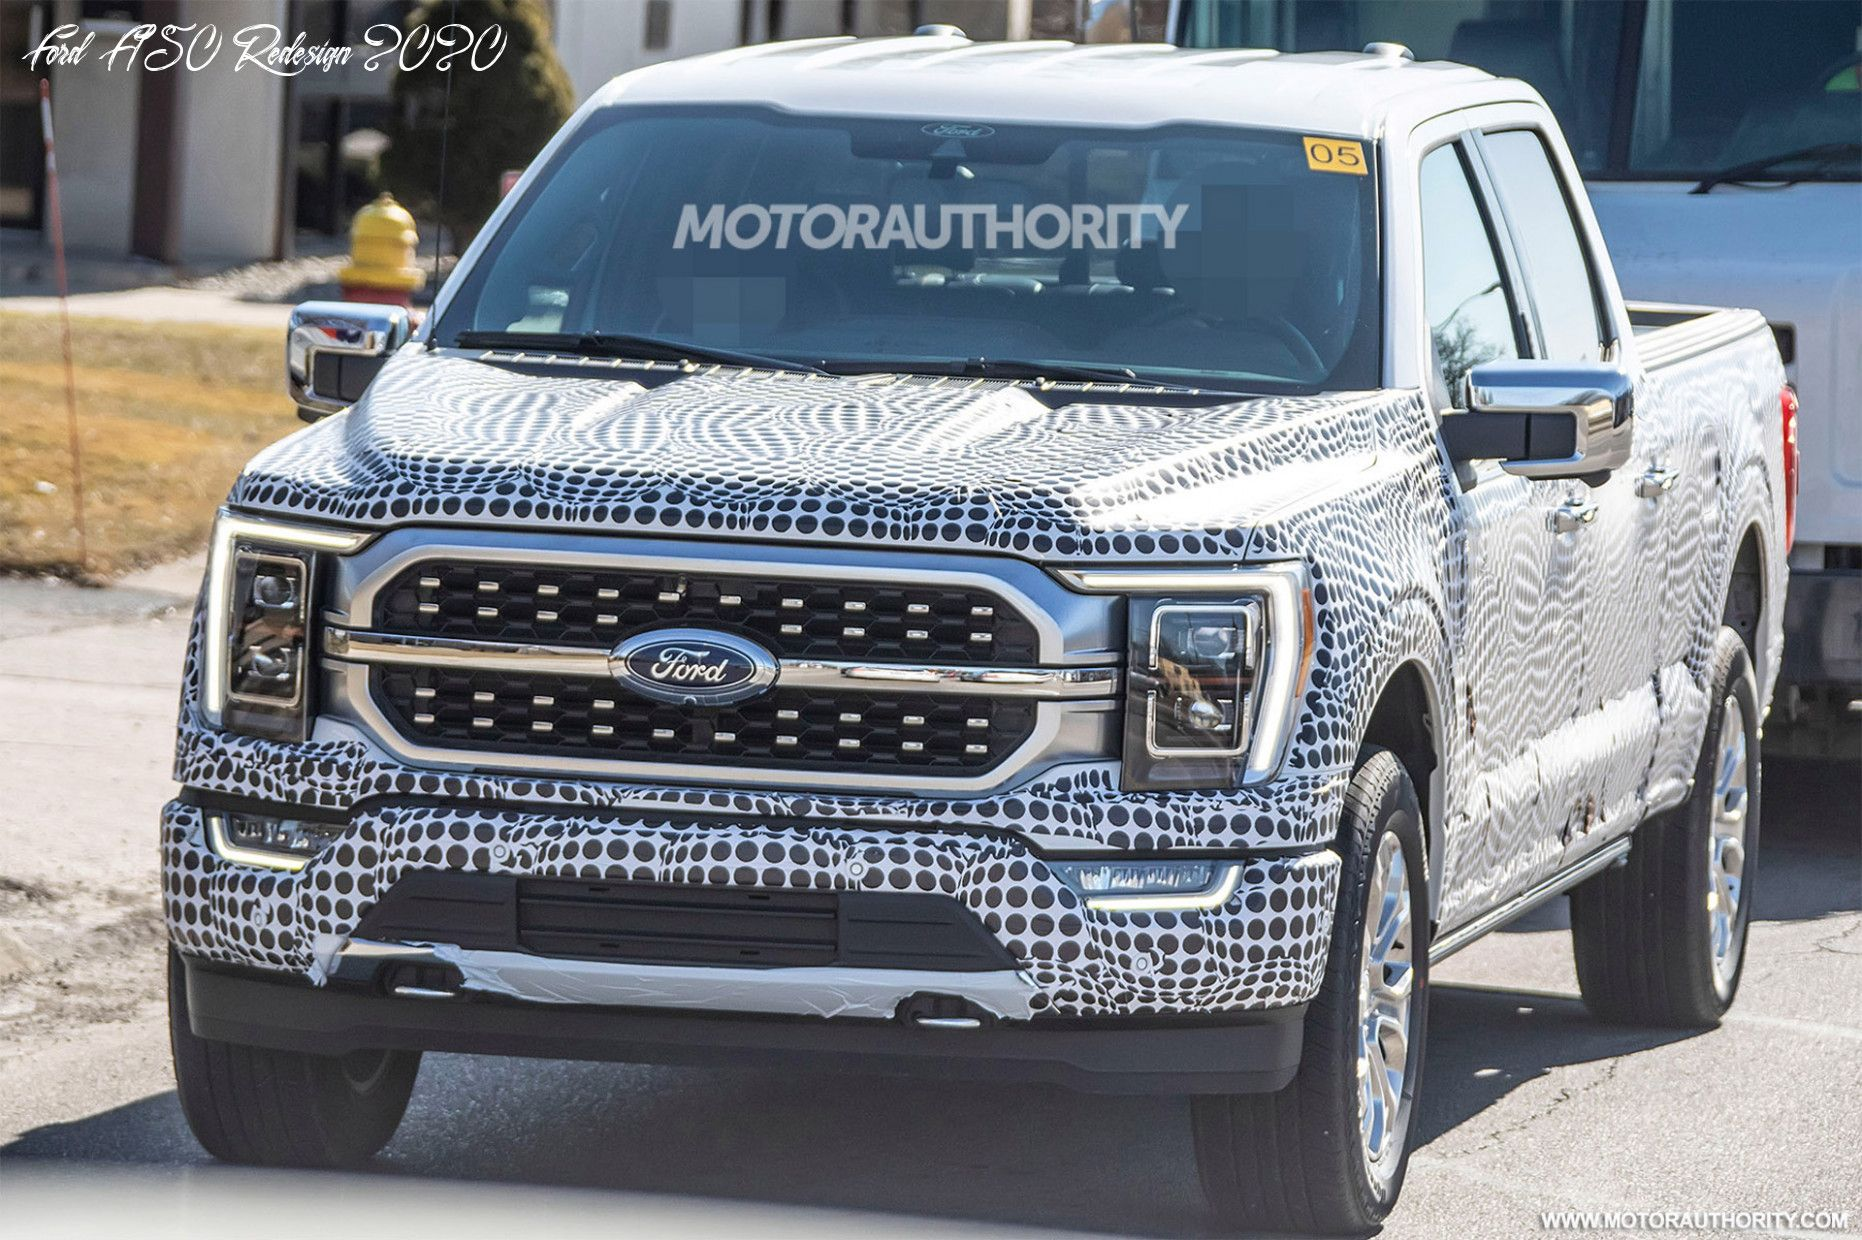 Ford F150 Redesign 2020 Specs In 2020 Ford F350 Diesel Ford F150 Ford Expedition